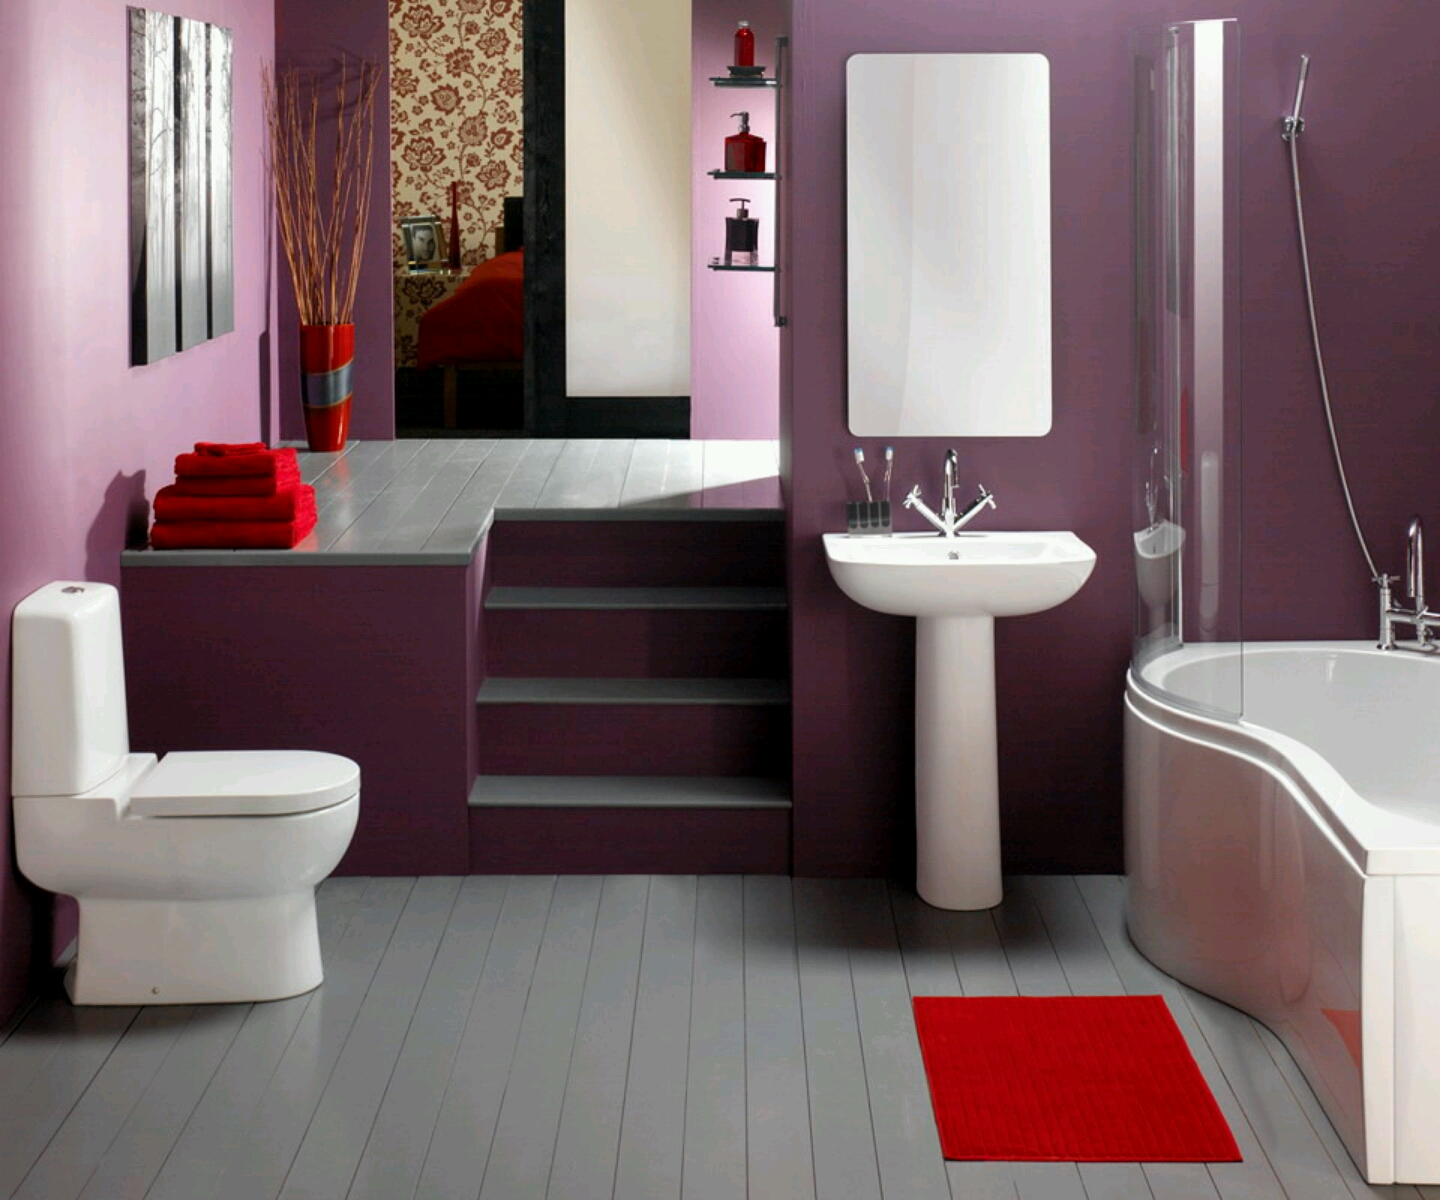 New home designs latest luxury modern bathrooms designs for Modern style bathroom designs